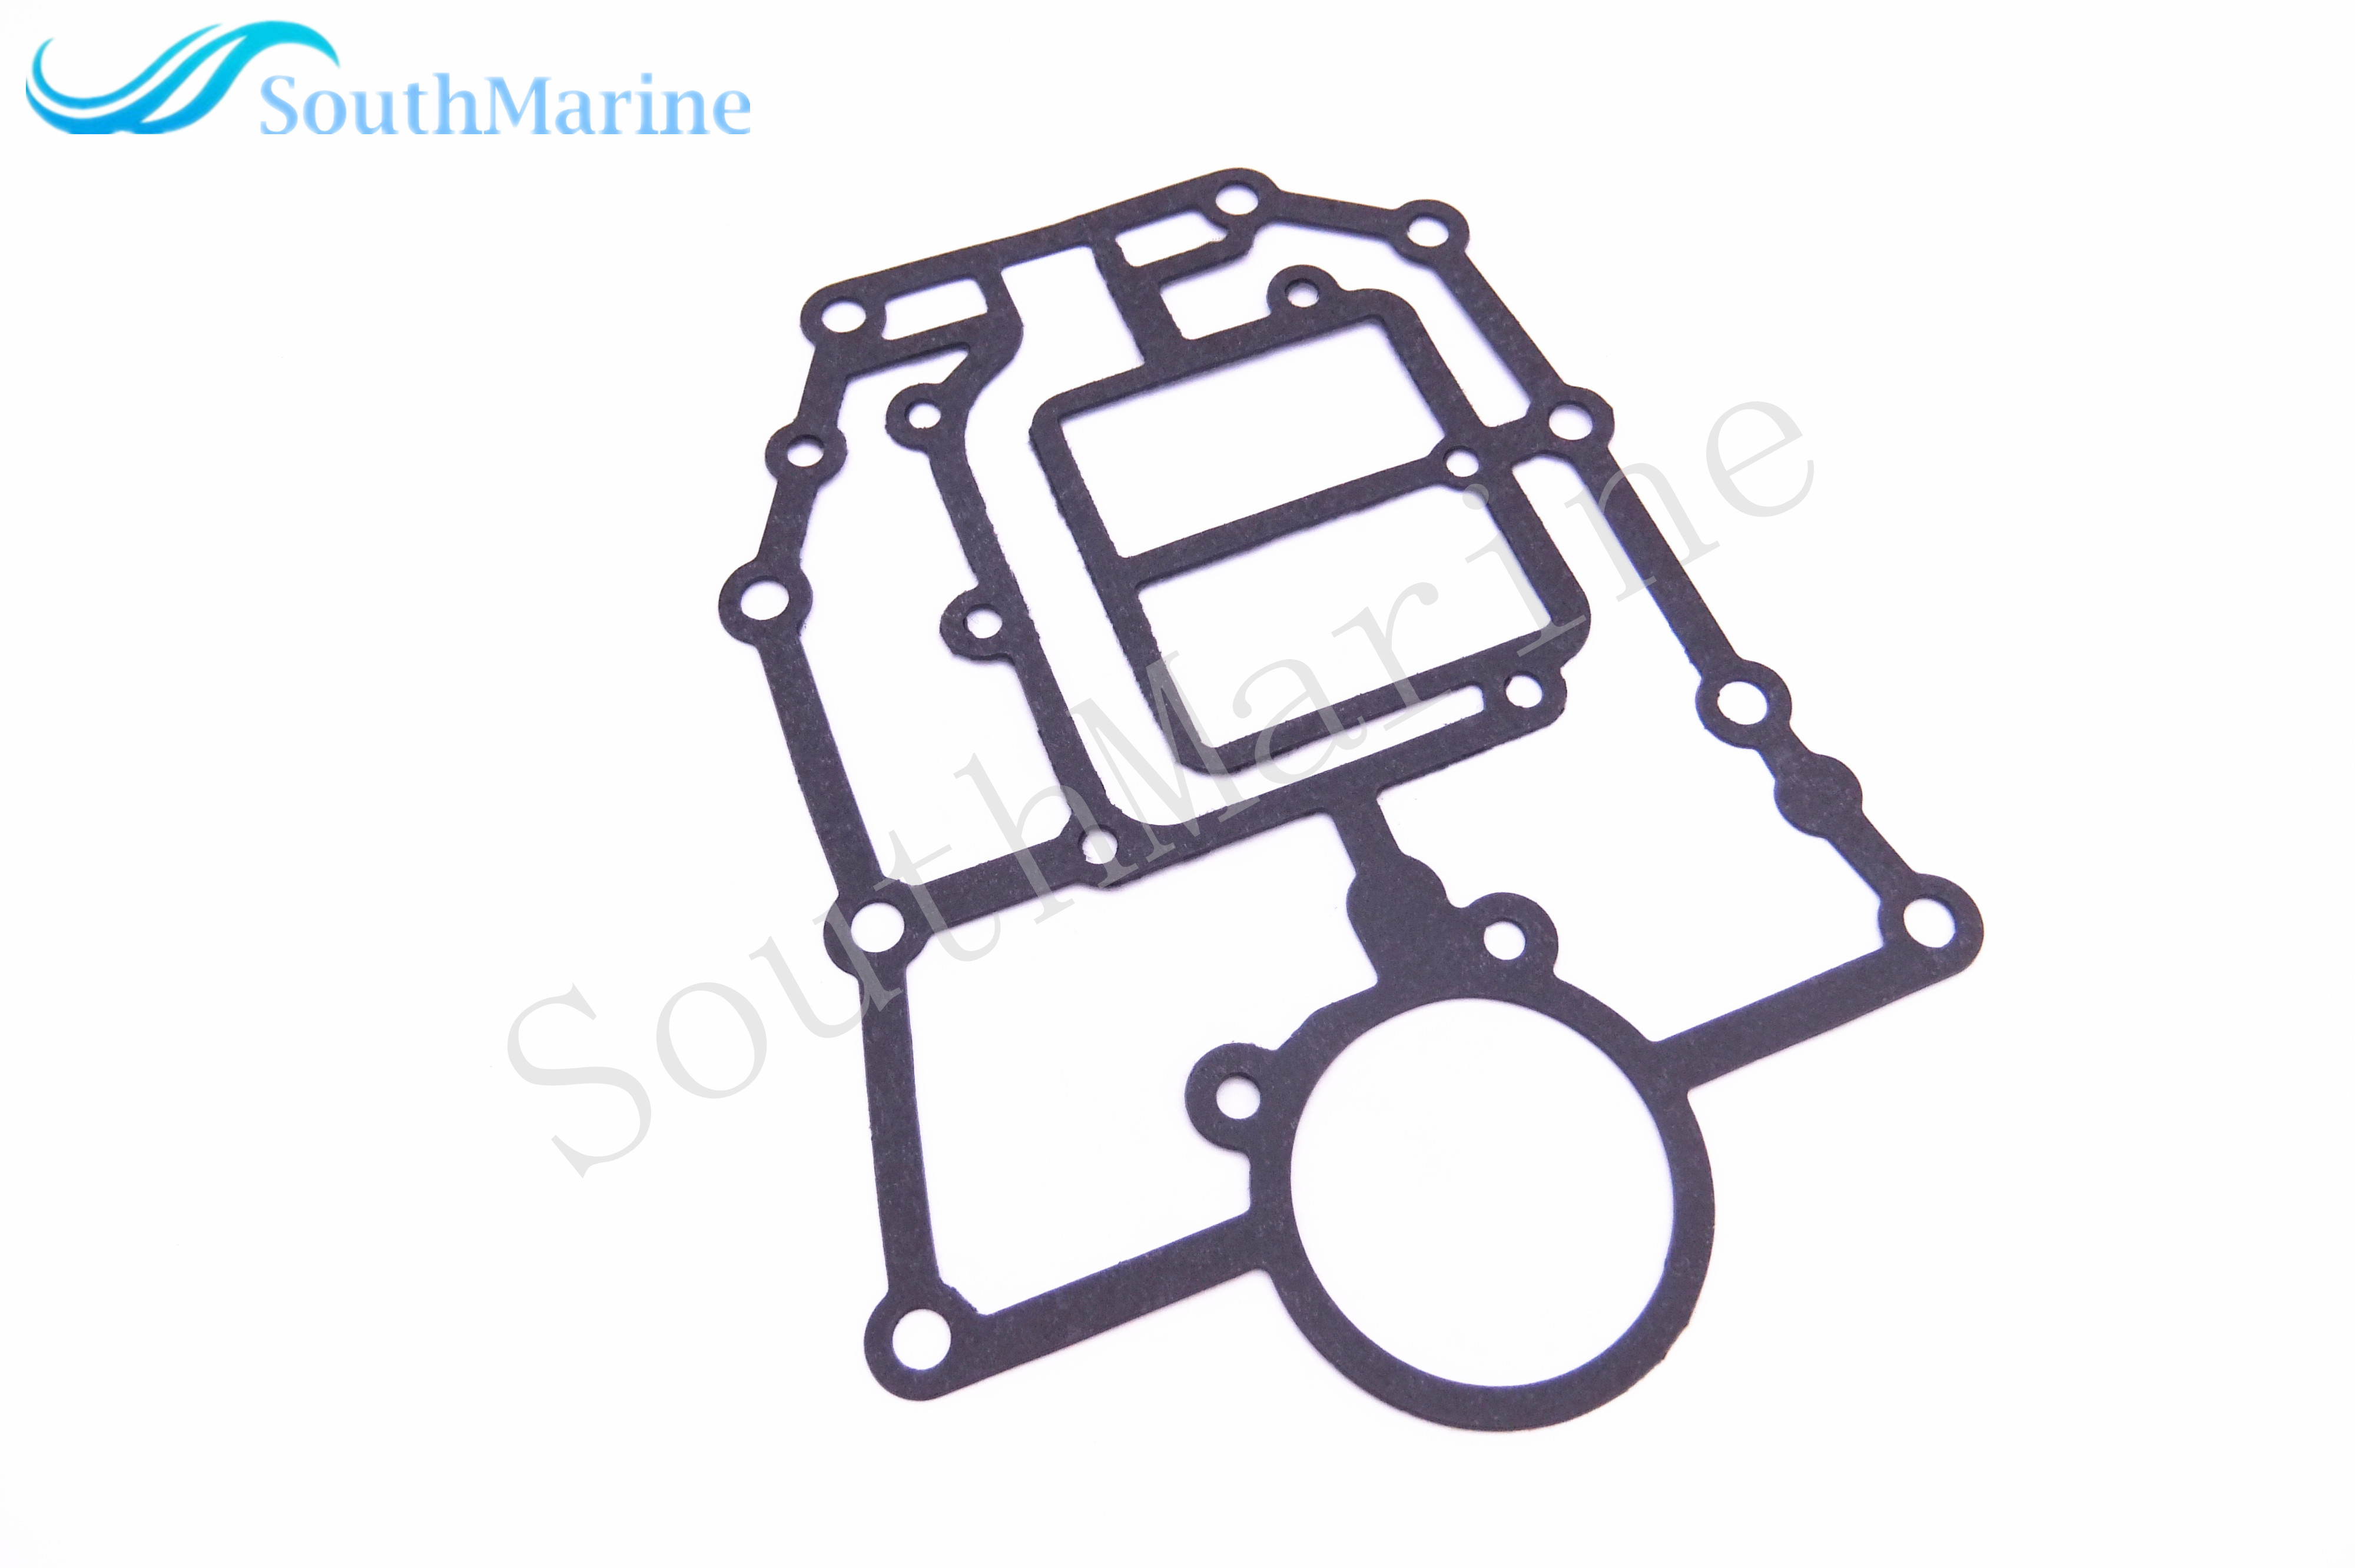 hight resolution of 11433 94412 boat motor gasket under oil seal for suzuki 40hp dt40 outboard engine 11433 94411 in boat engine from automobiles motorcycles on